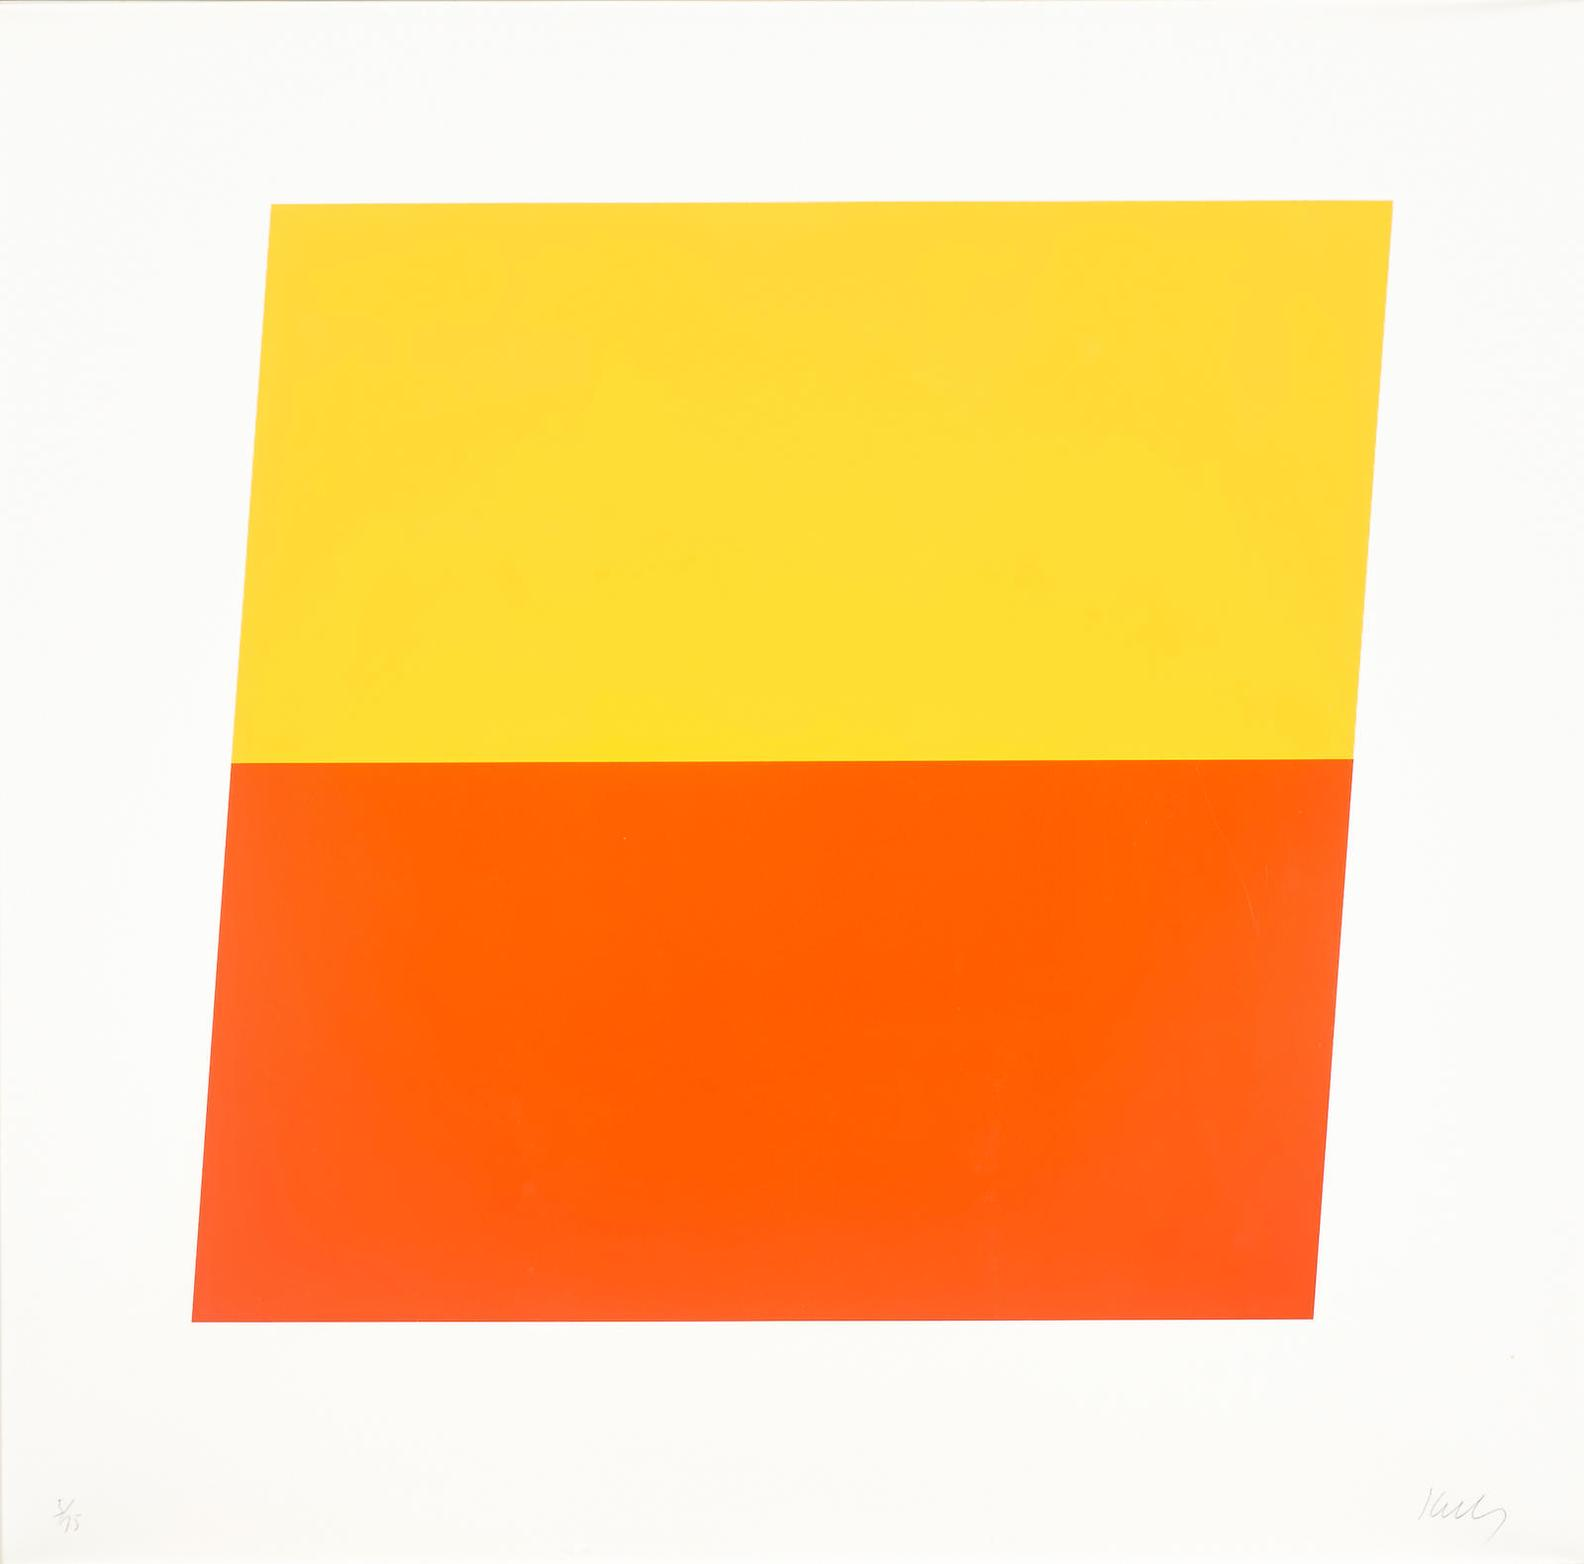 Ellsworth Kelly-Yellow/Red-Orange-1970